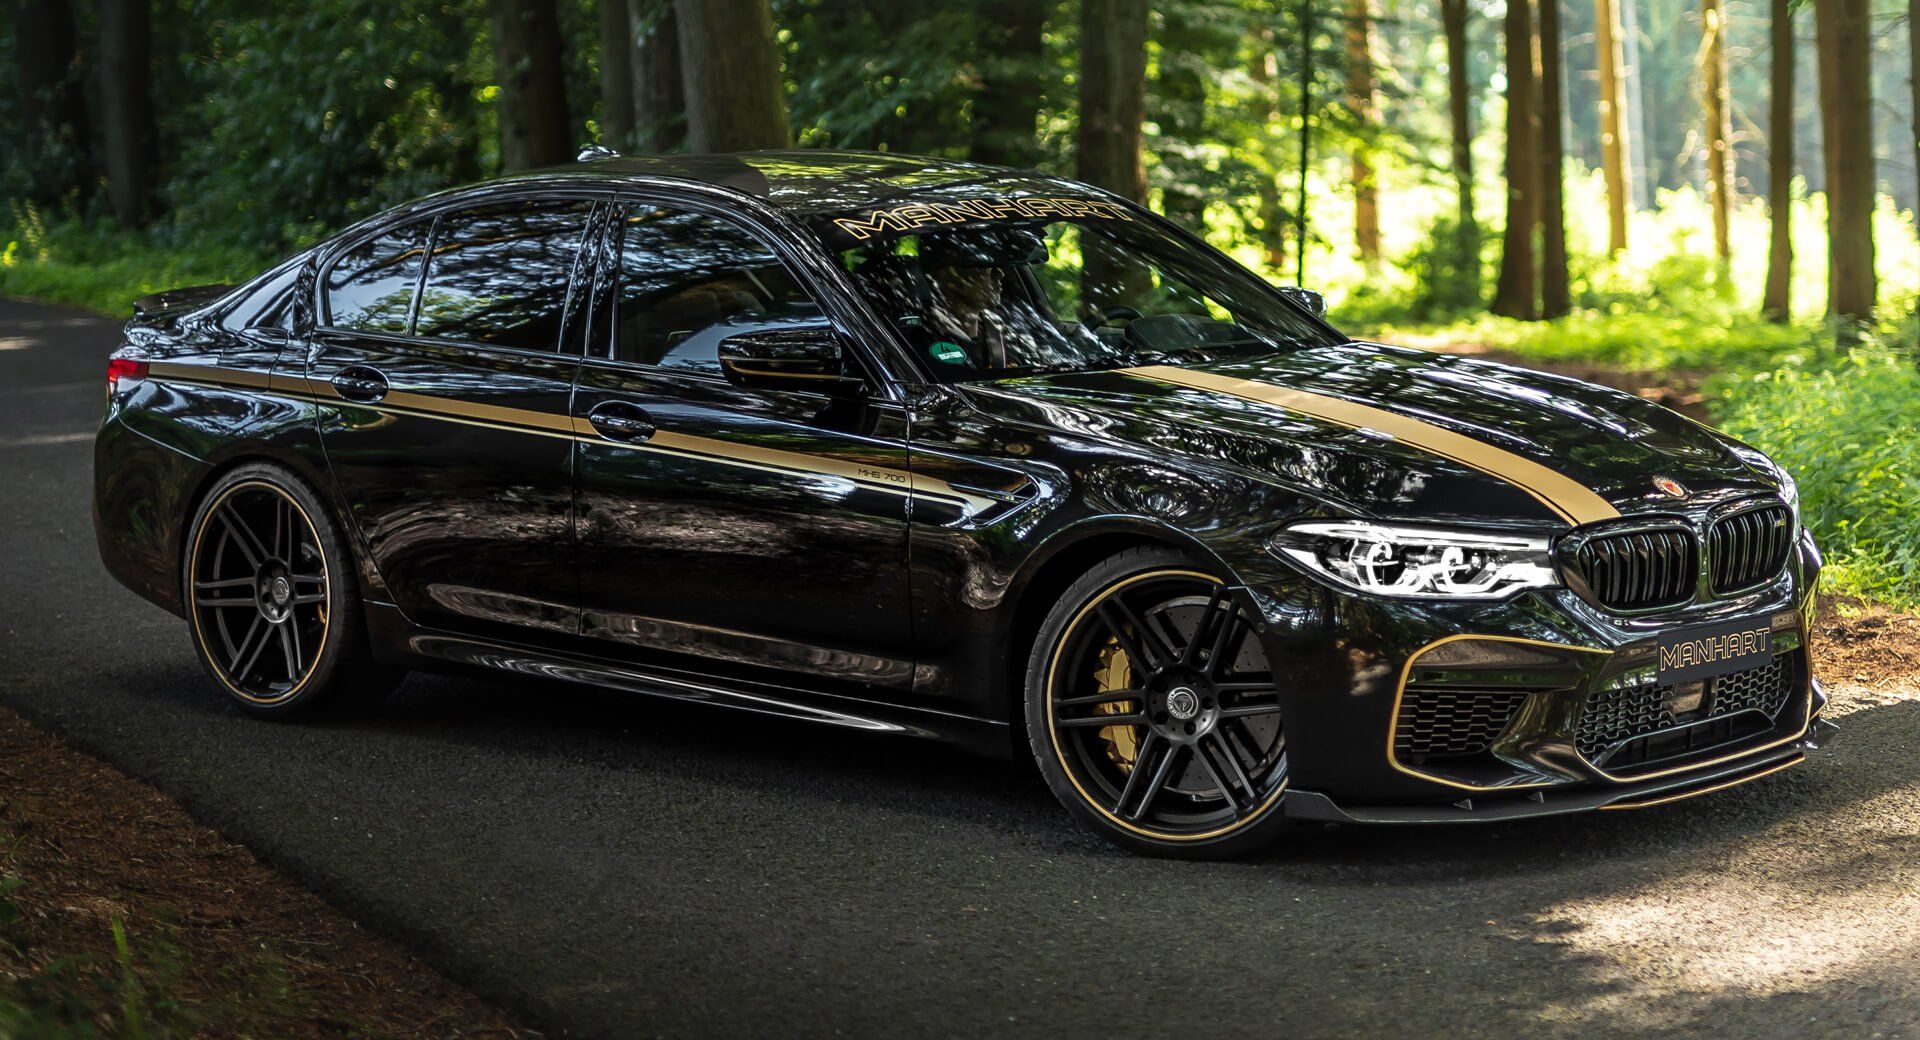 Manhart S Mh5 Is A Bmw M5 With 723ps And A Carbon Fiber Pack Carscoops Bmw M5 Bmw High Performance Cars Bmw m5 manhart racing mh5 700 2018